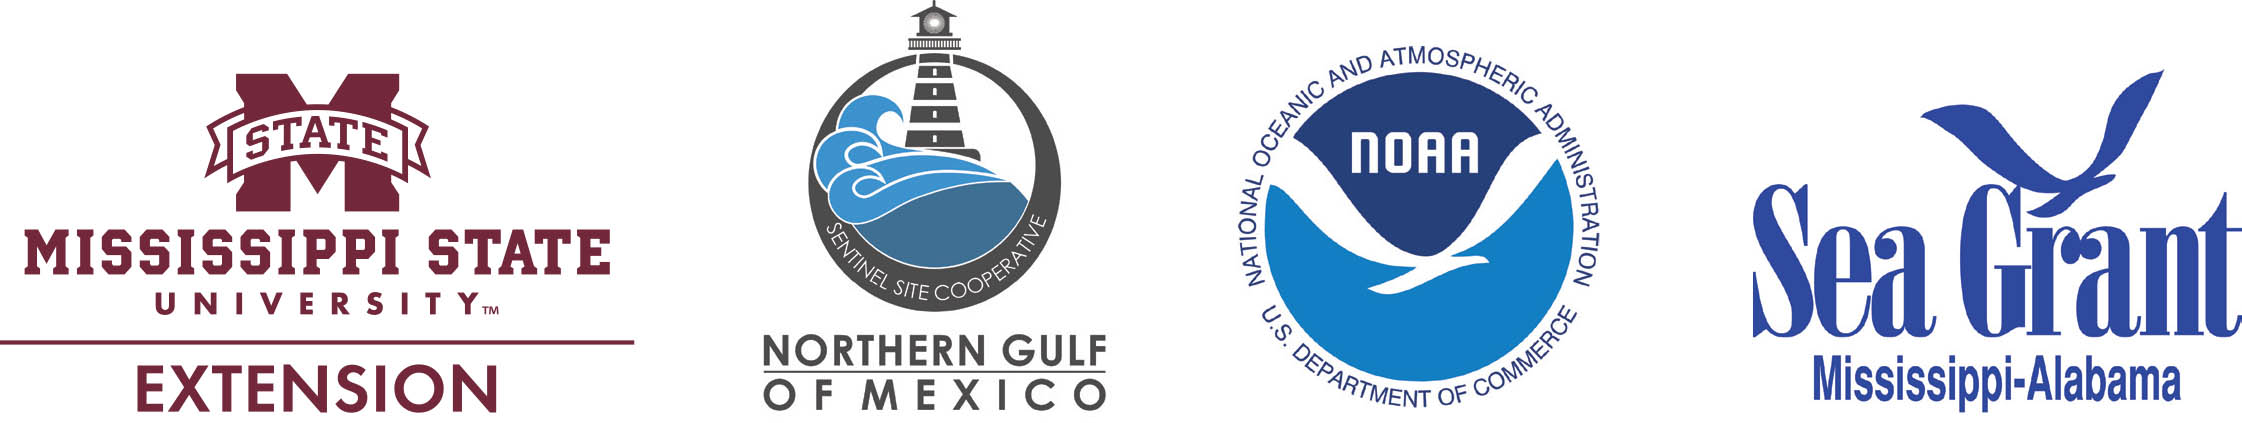 Logos: Mississippi State University Extension Service; Northern Gulf of Mexico Sentinel Site Cooperative; National Oceanic and Atmospheric Administration; Mississippi-Alabama Sea Grant.